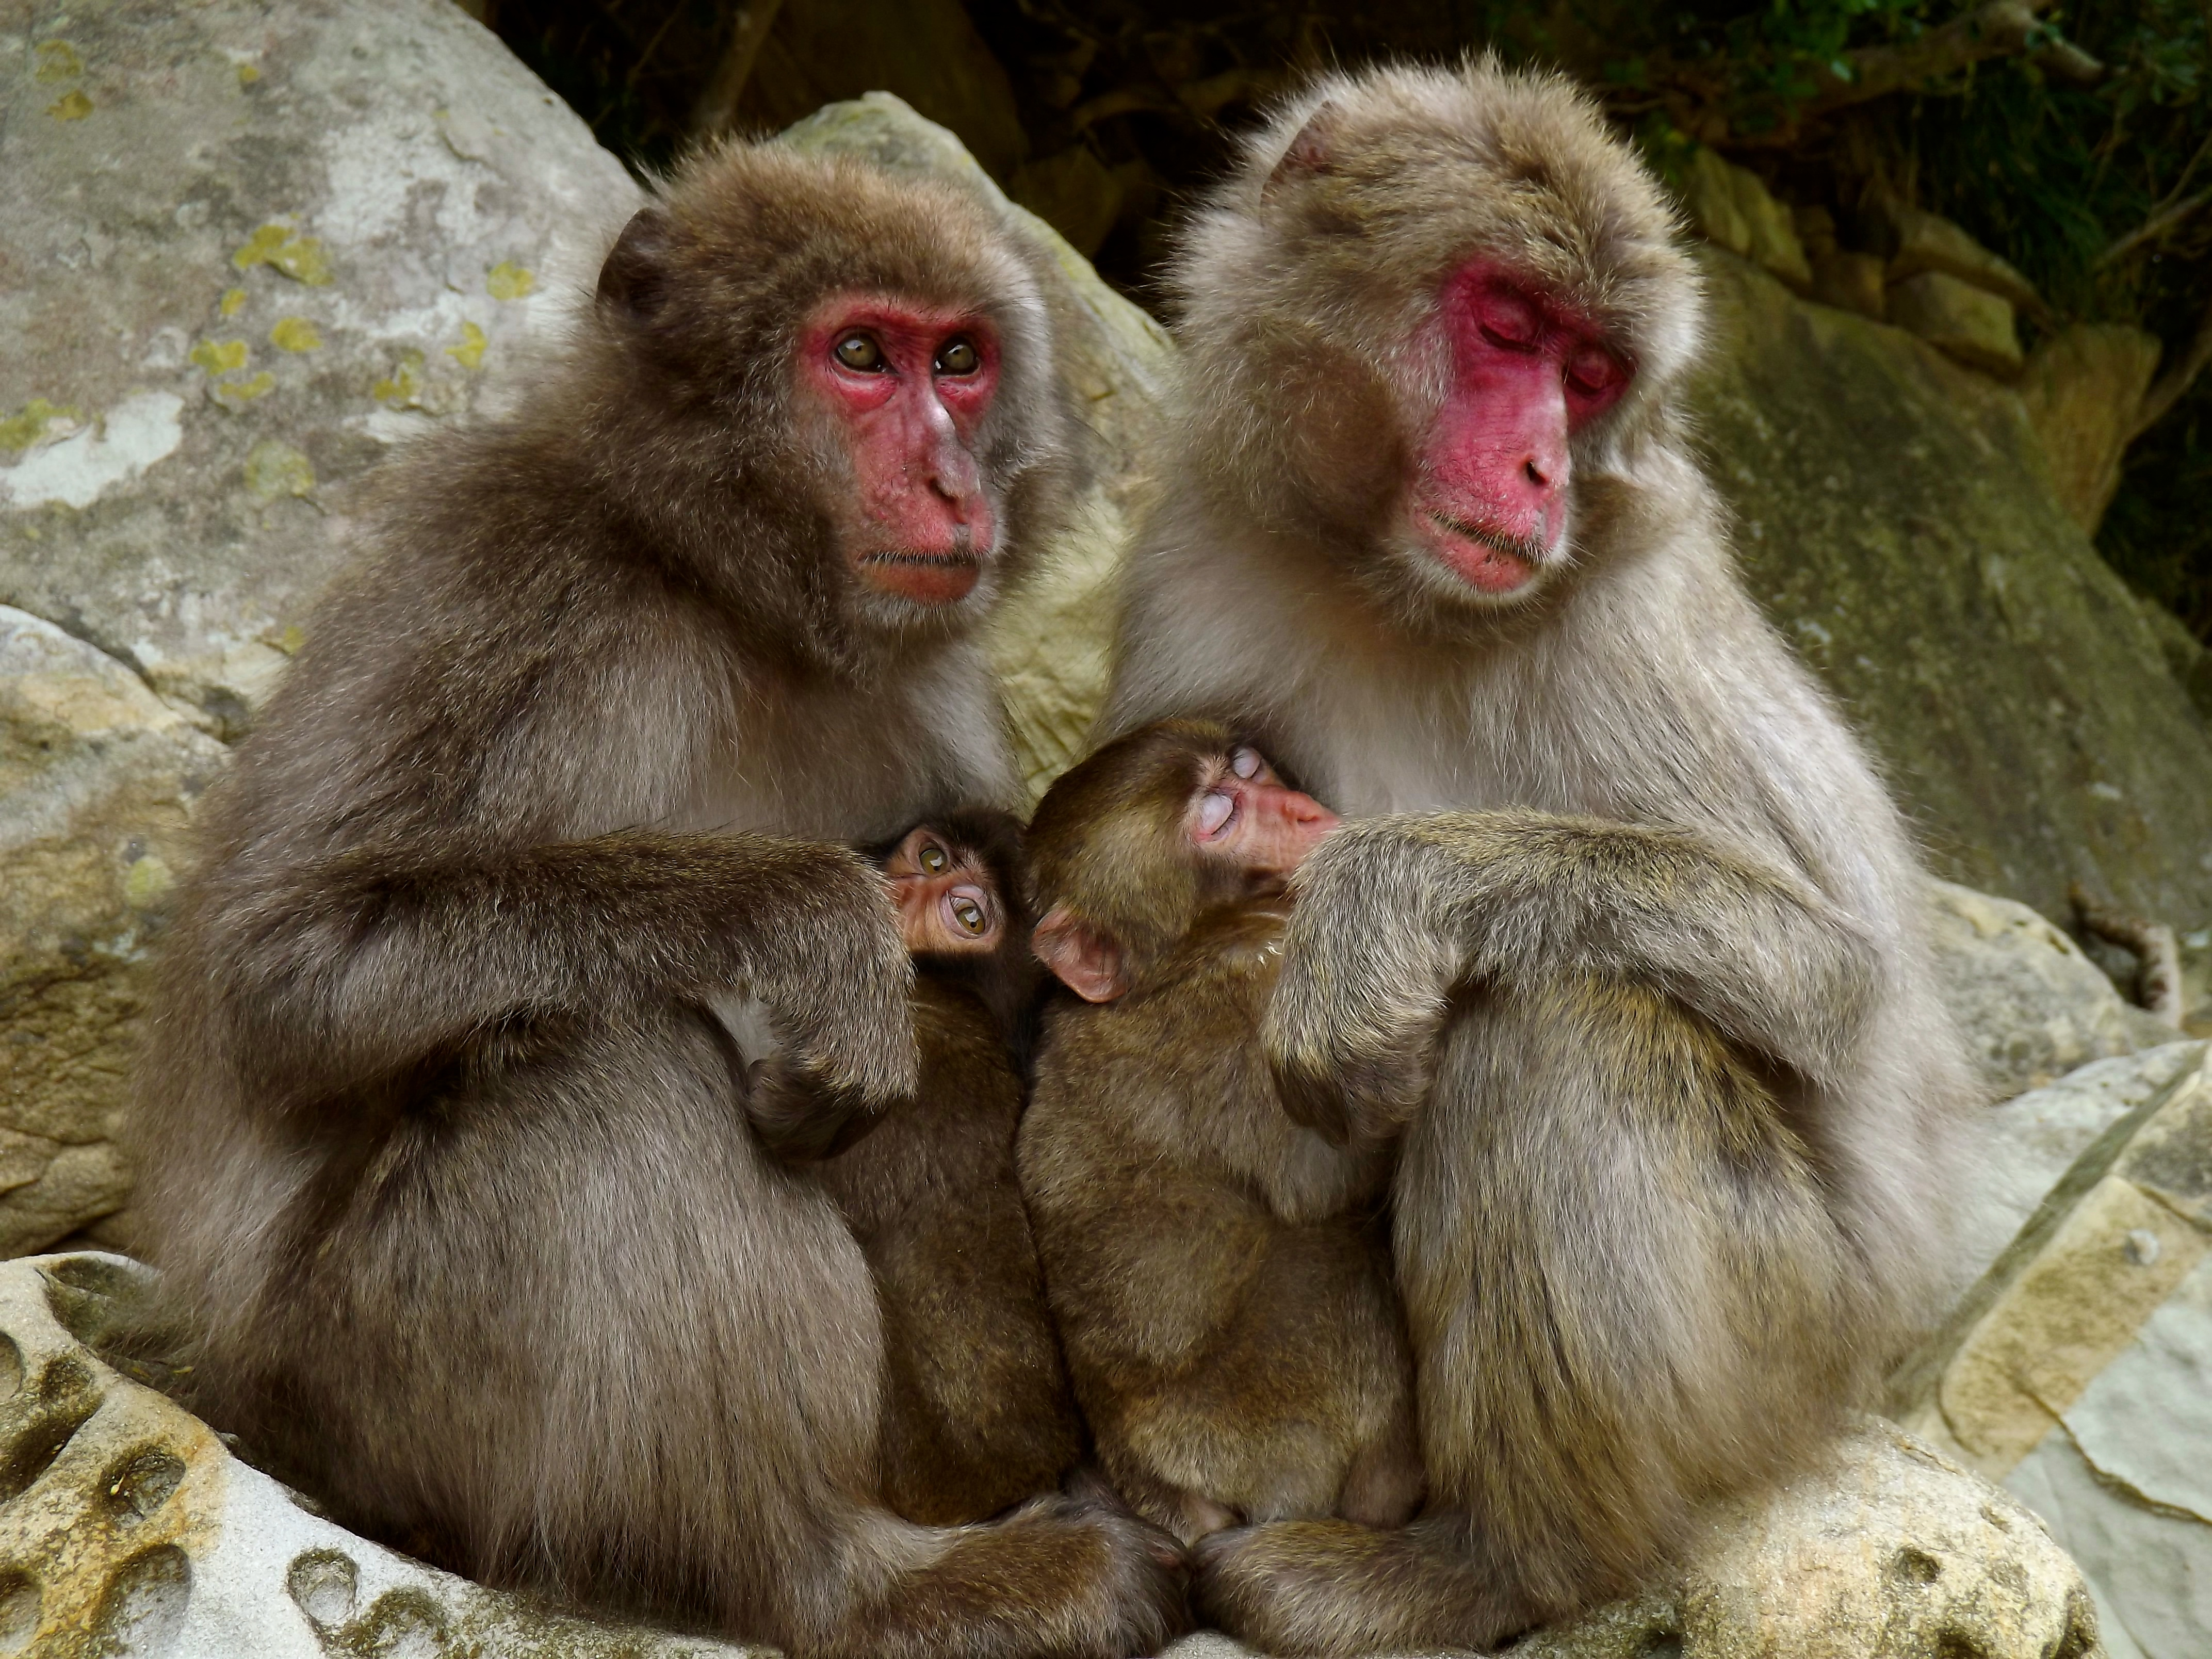 Japanese macaques of Koshima island, Japan